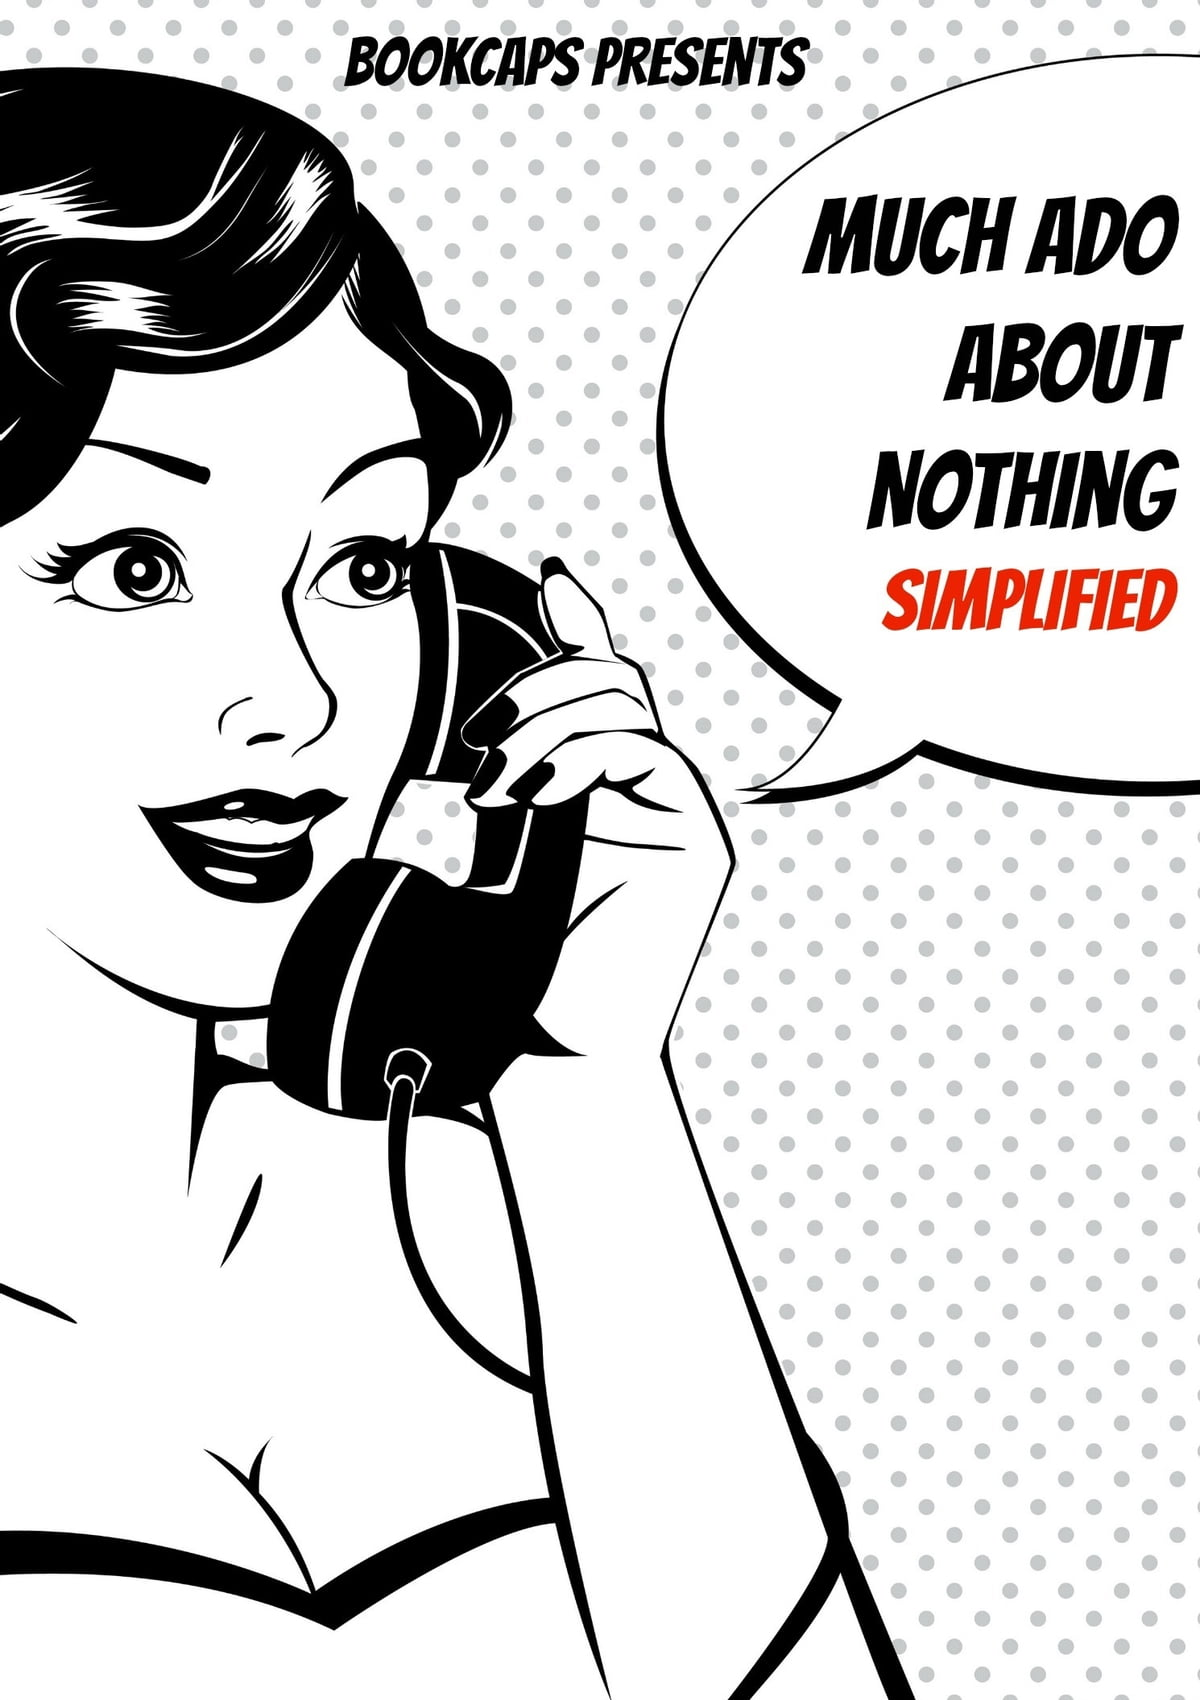 Much Ado About Nothing Simplified! (Includes Study Guide